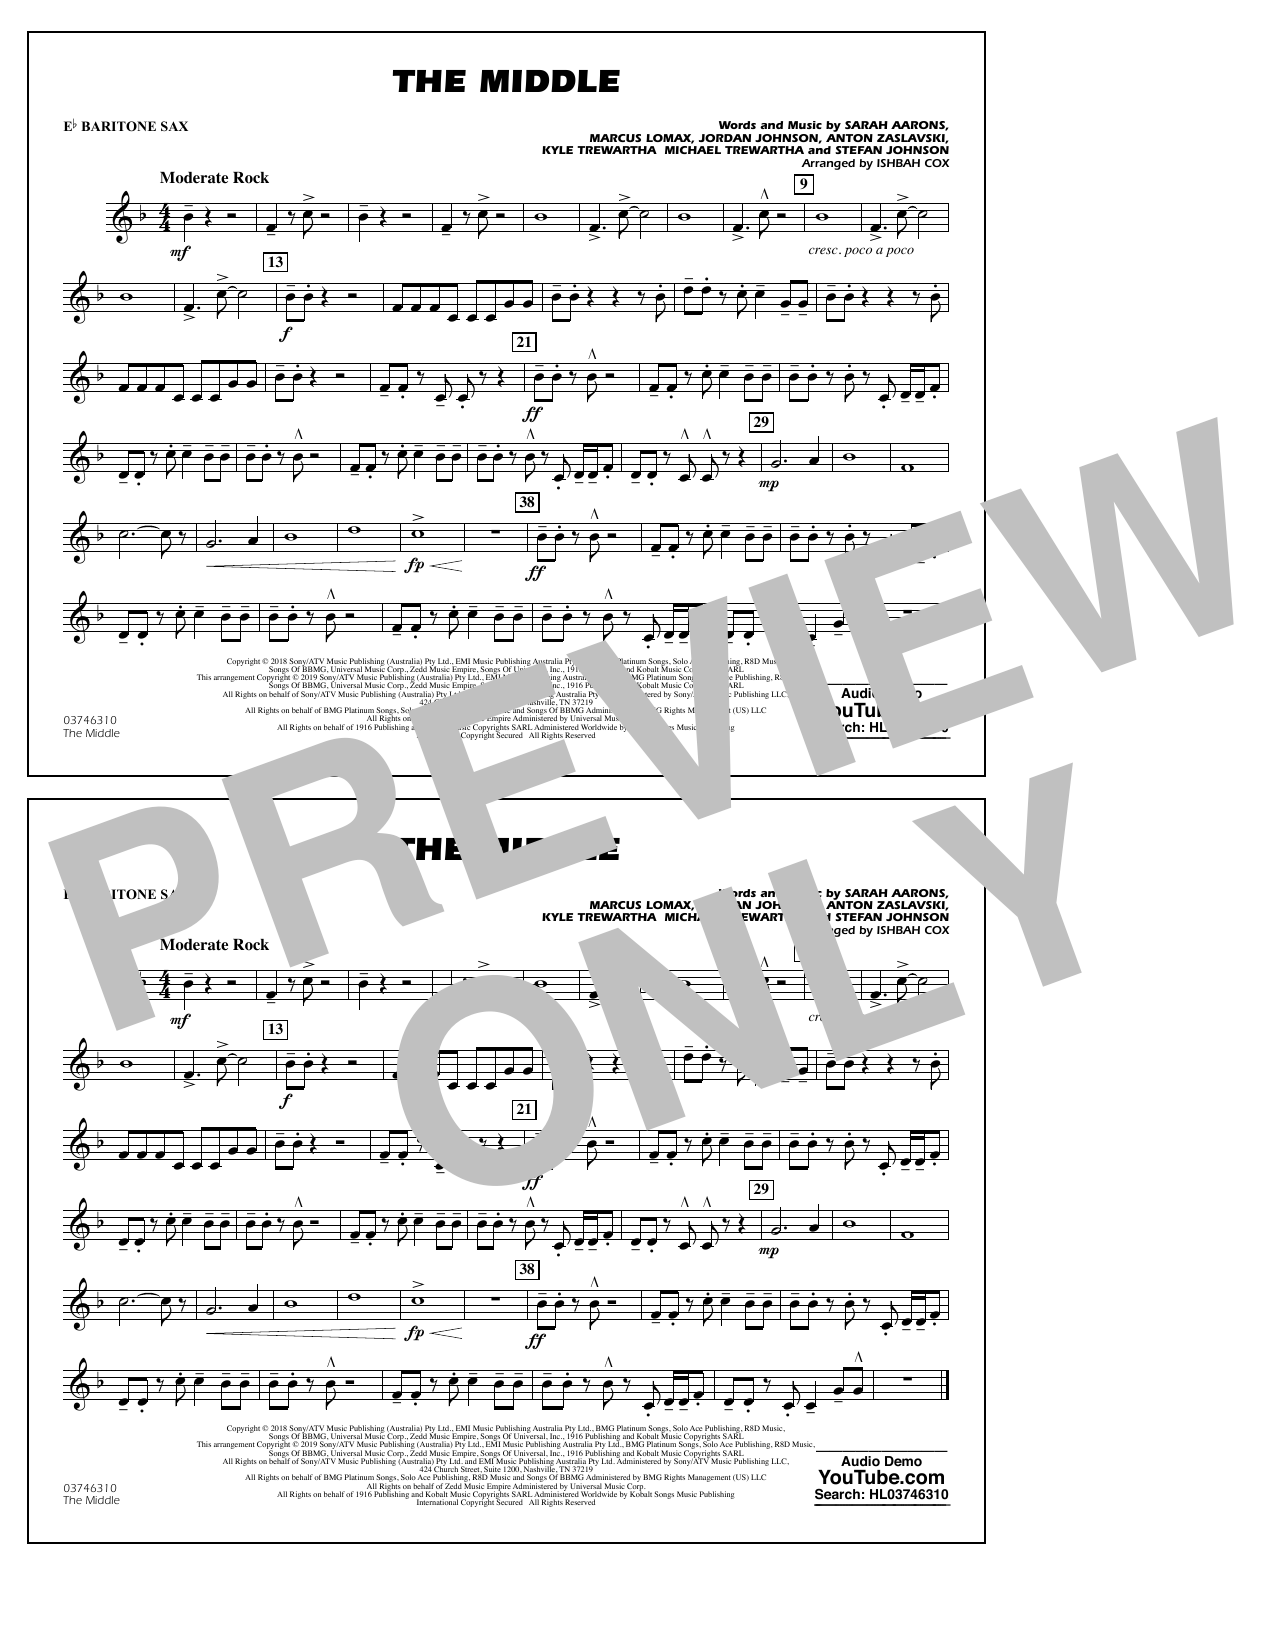 The Middle (arr. Ishbah Cox) - Eb Baritone Sax (Marching Band)